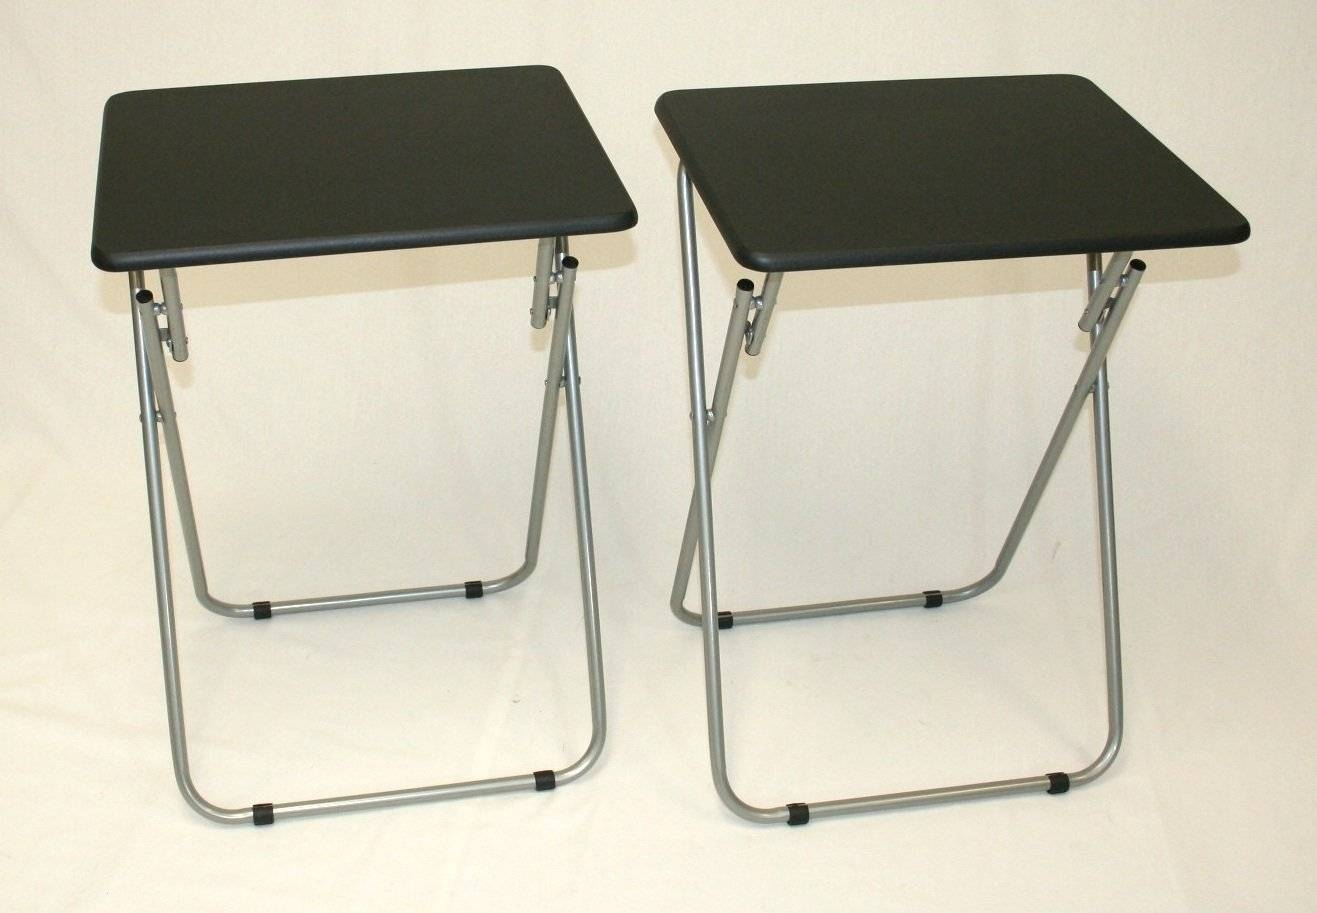 Black Leathertv Tray Table With Stainless Steel Folding Stand Ideas inside Folding Tv Trays With Stand (Image 2 of 15)